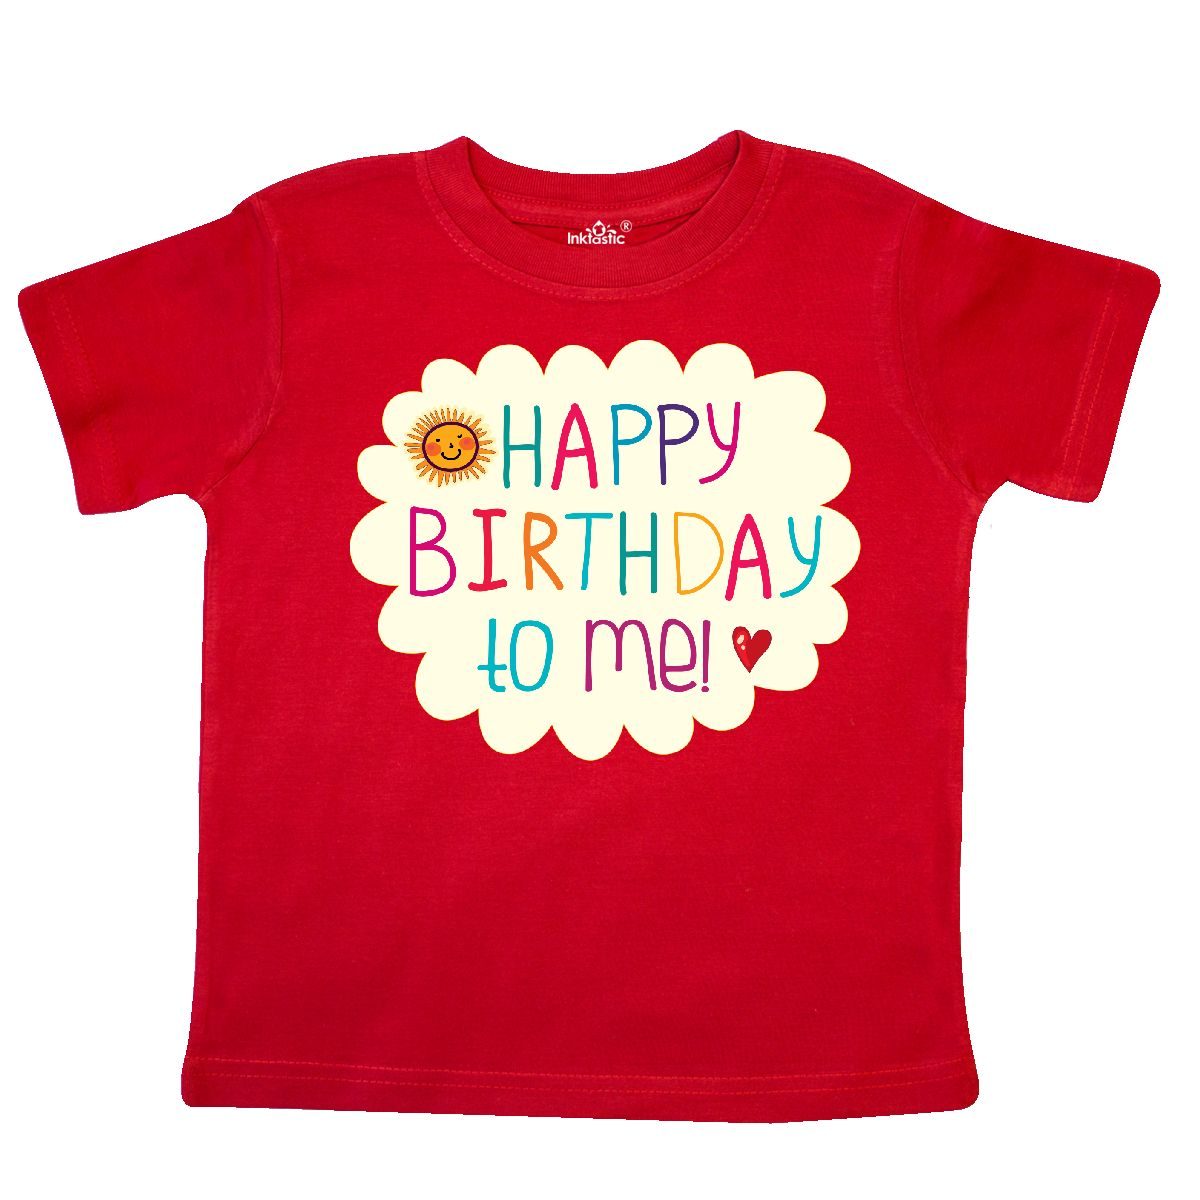 Happy Birthday To Me Toddler T Shirt Red 2T